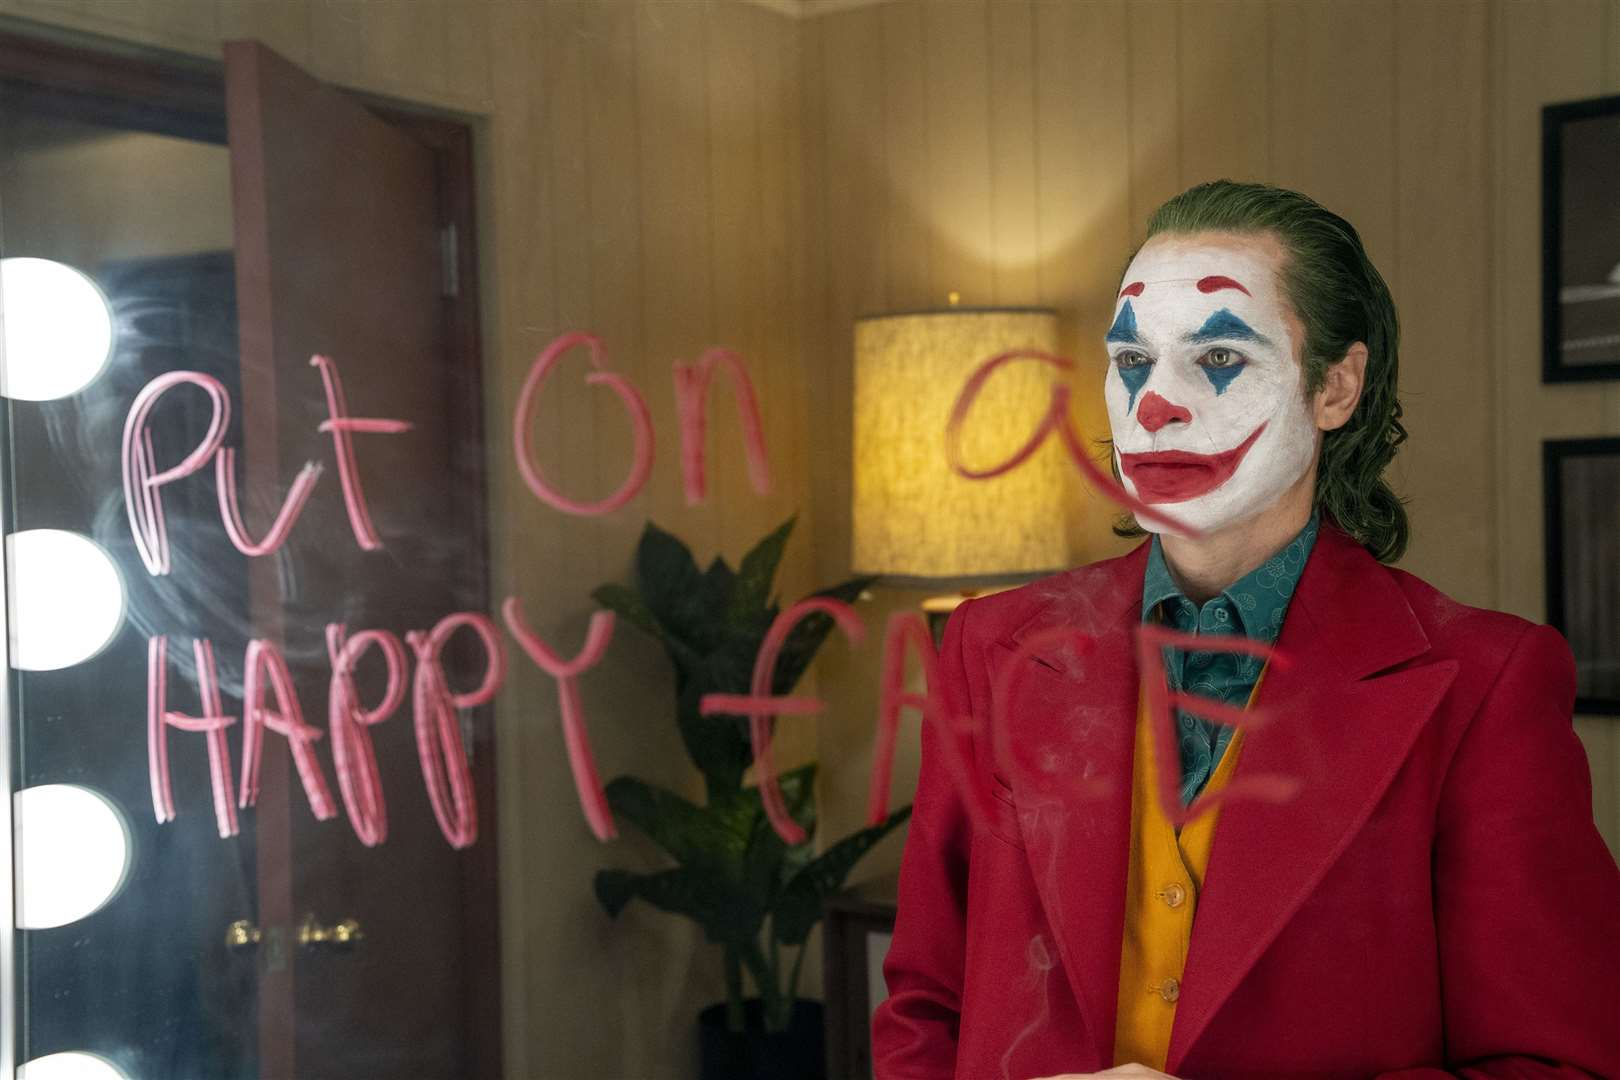 Joaquin Phoenix as Arthur Fleck in Joker. Picture by PA Photo/Warner Bros. Entertainment Inc./DC Comics/Niko Tavernise.